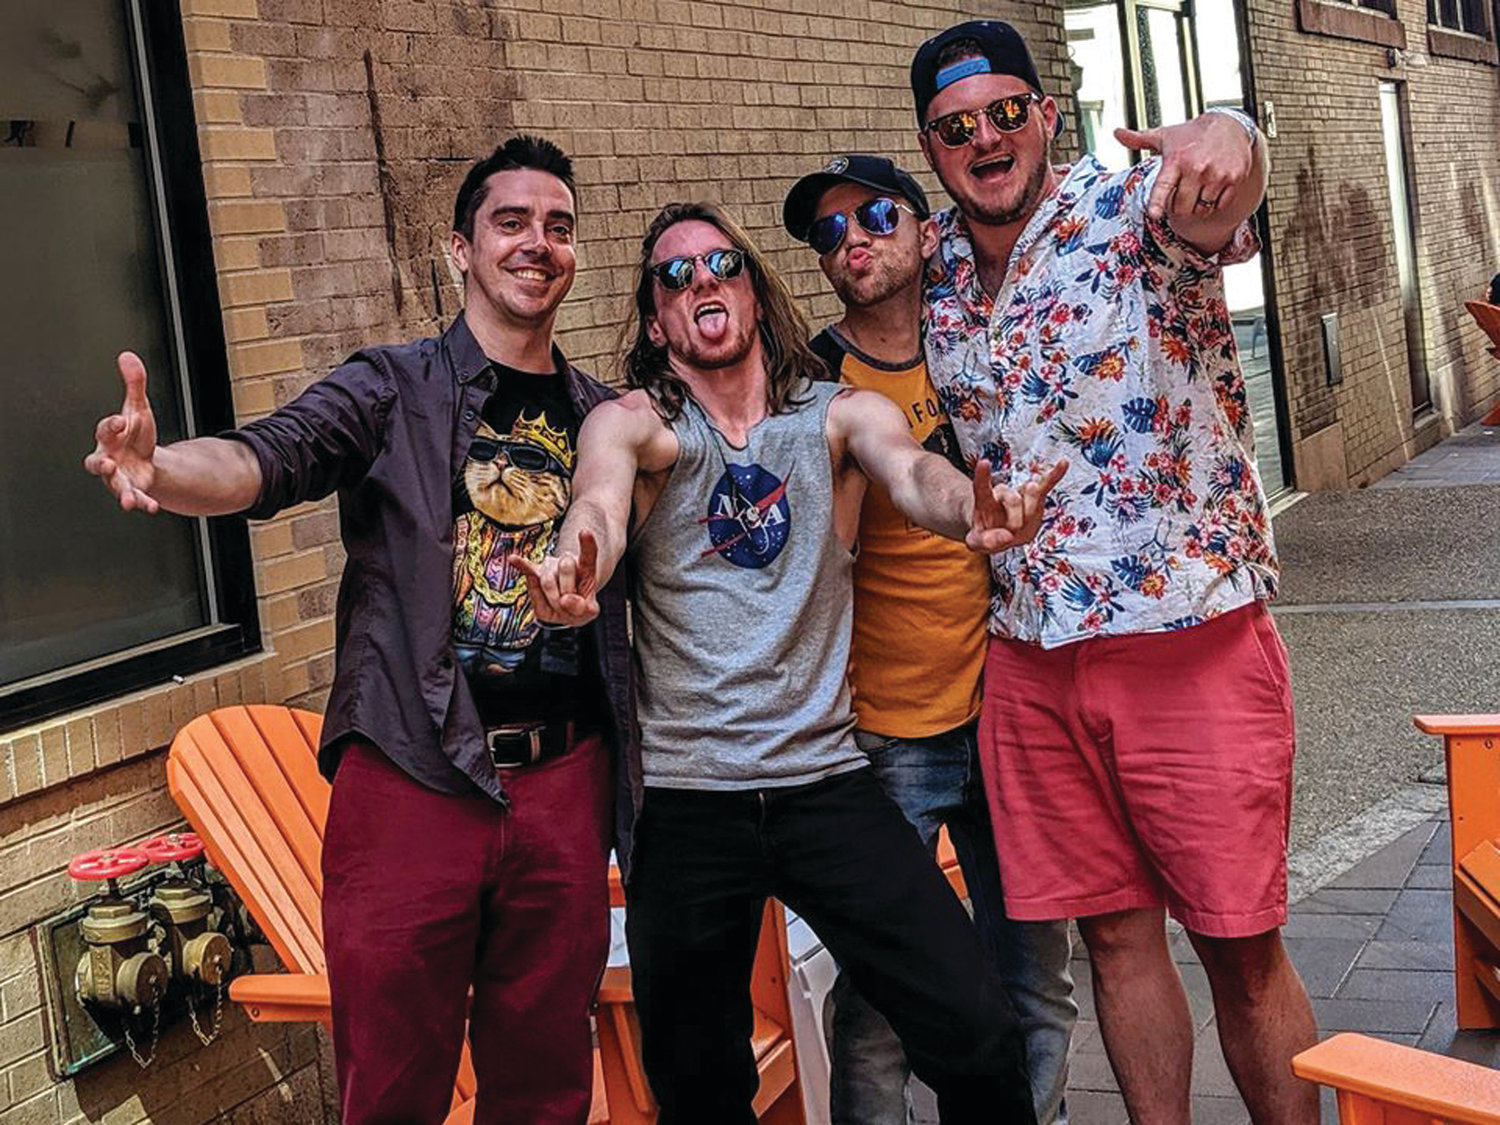 SUMMER SOUNDS: The member of Tai Chi Funk Squad – guitarist and vocalist Jake Anderson, bassist Rob Anthony, drummer Dylan Butler and keyboardist Tom White – will perform on the front lawn of Pump House Music Works in South Kingstown on Aug. 8.